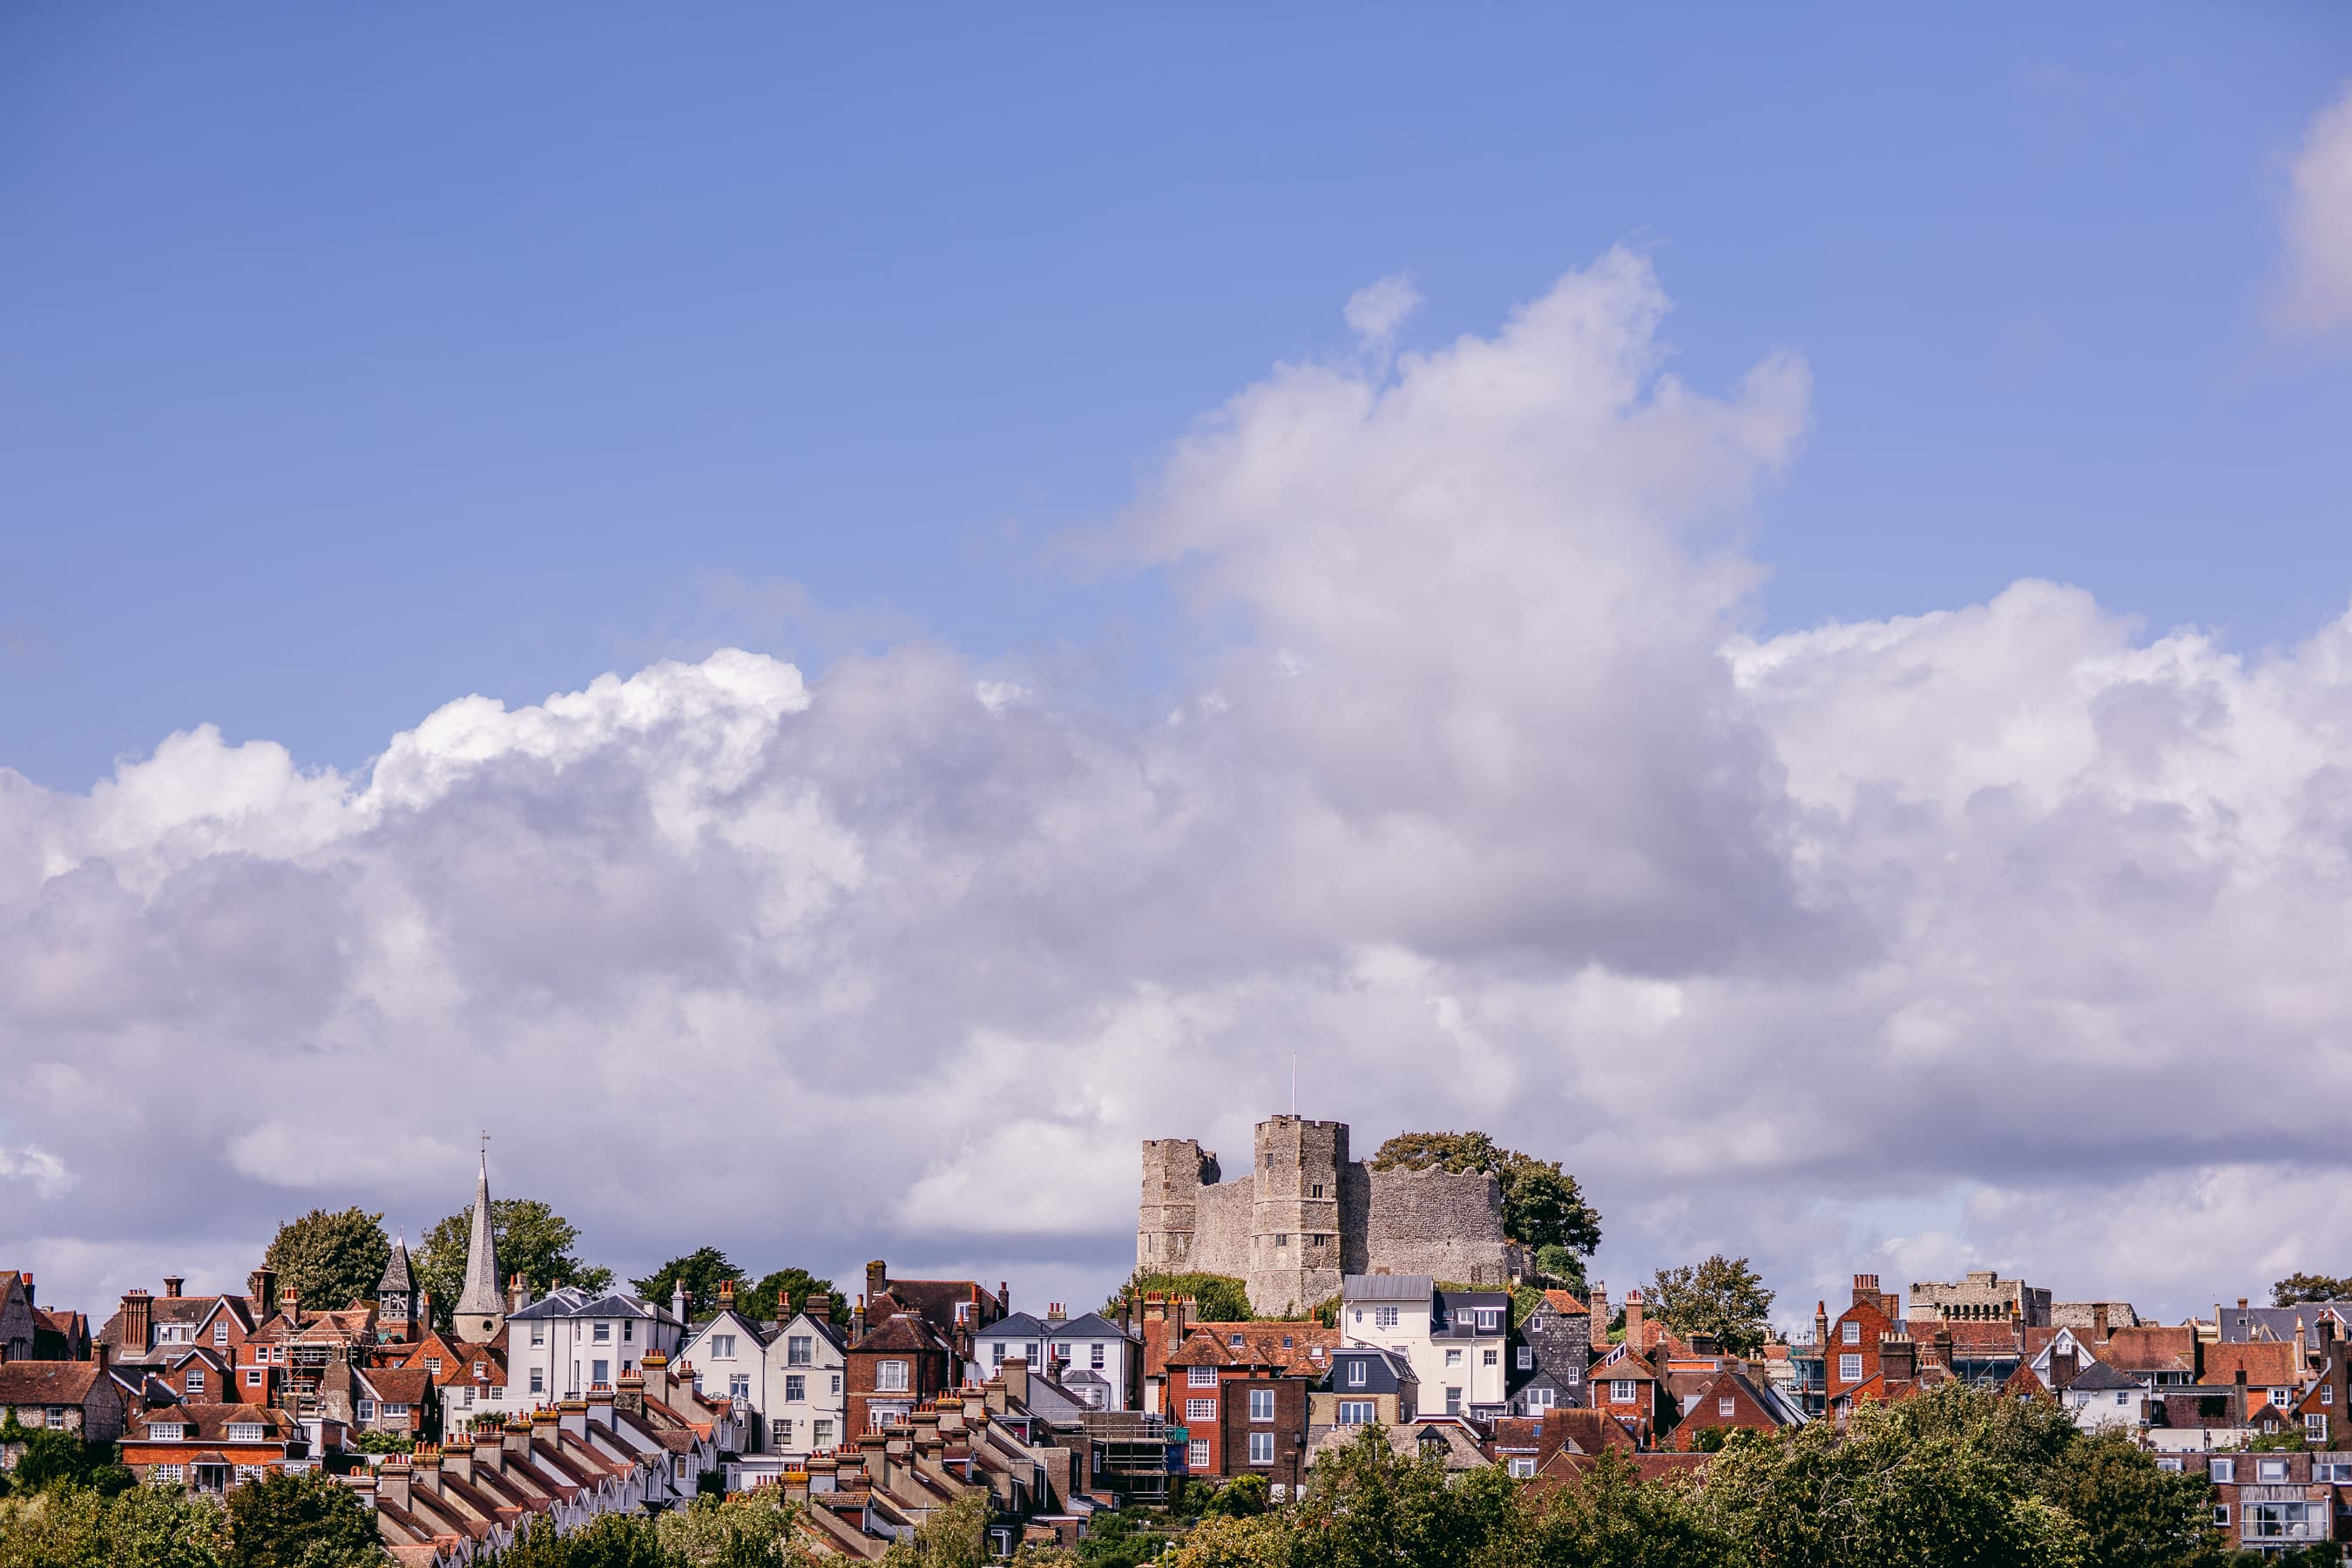 A view up the hill to Lewes castle